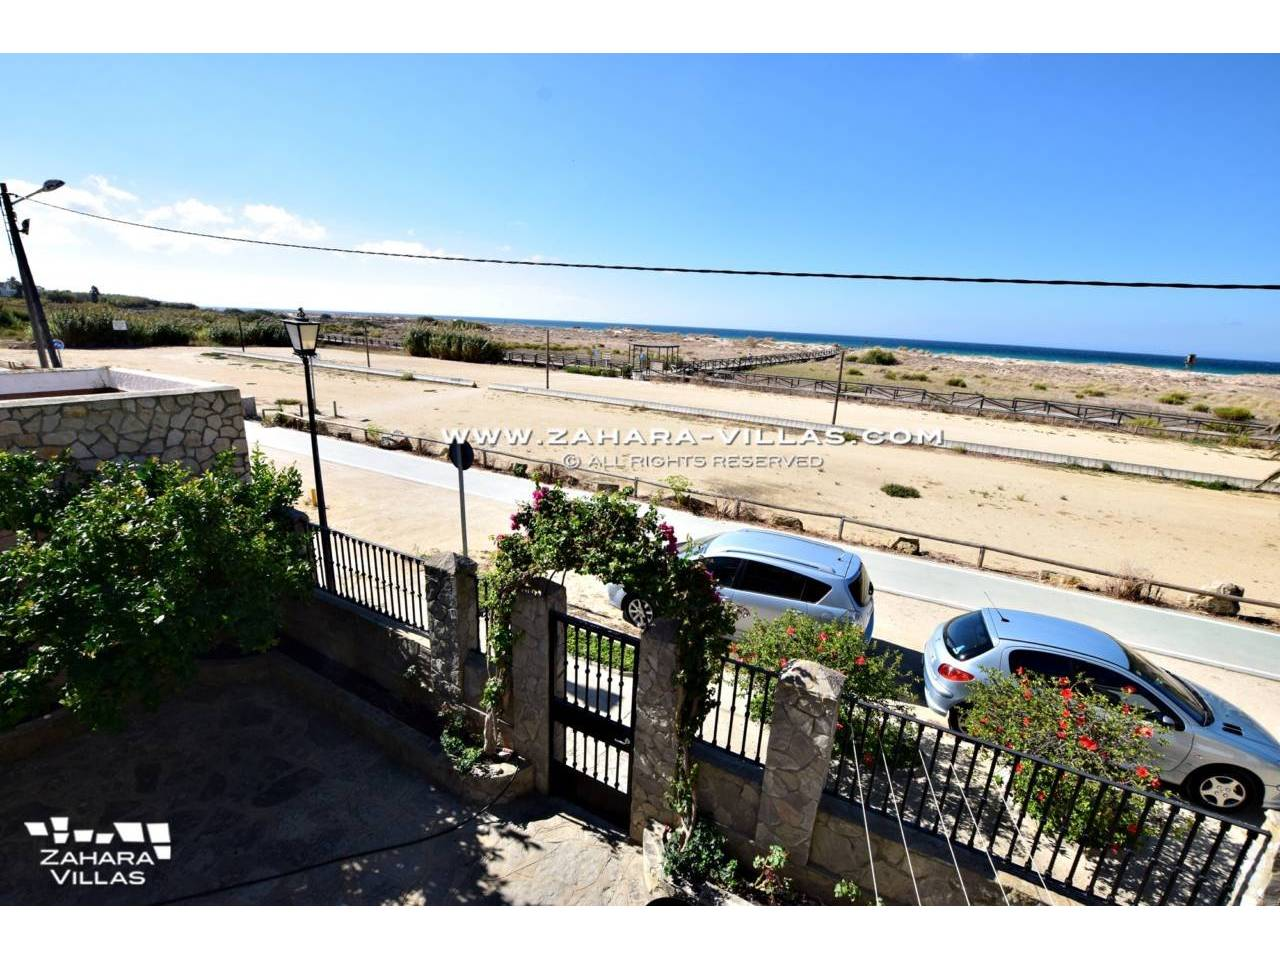 Imagen 4 de House for sale on the front beach, with sea views in Zahara de los Atunes